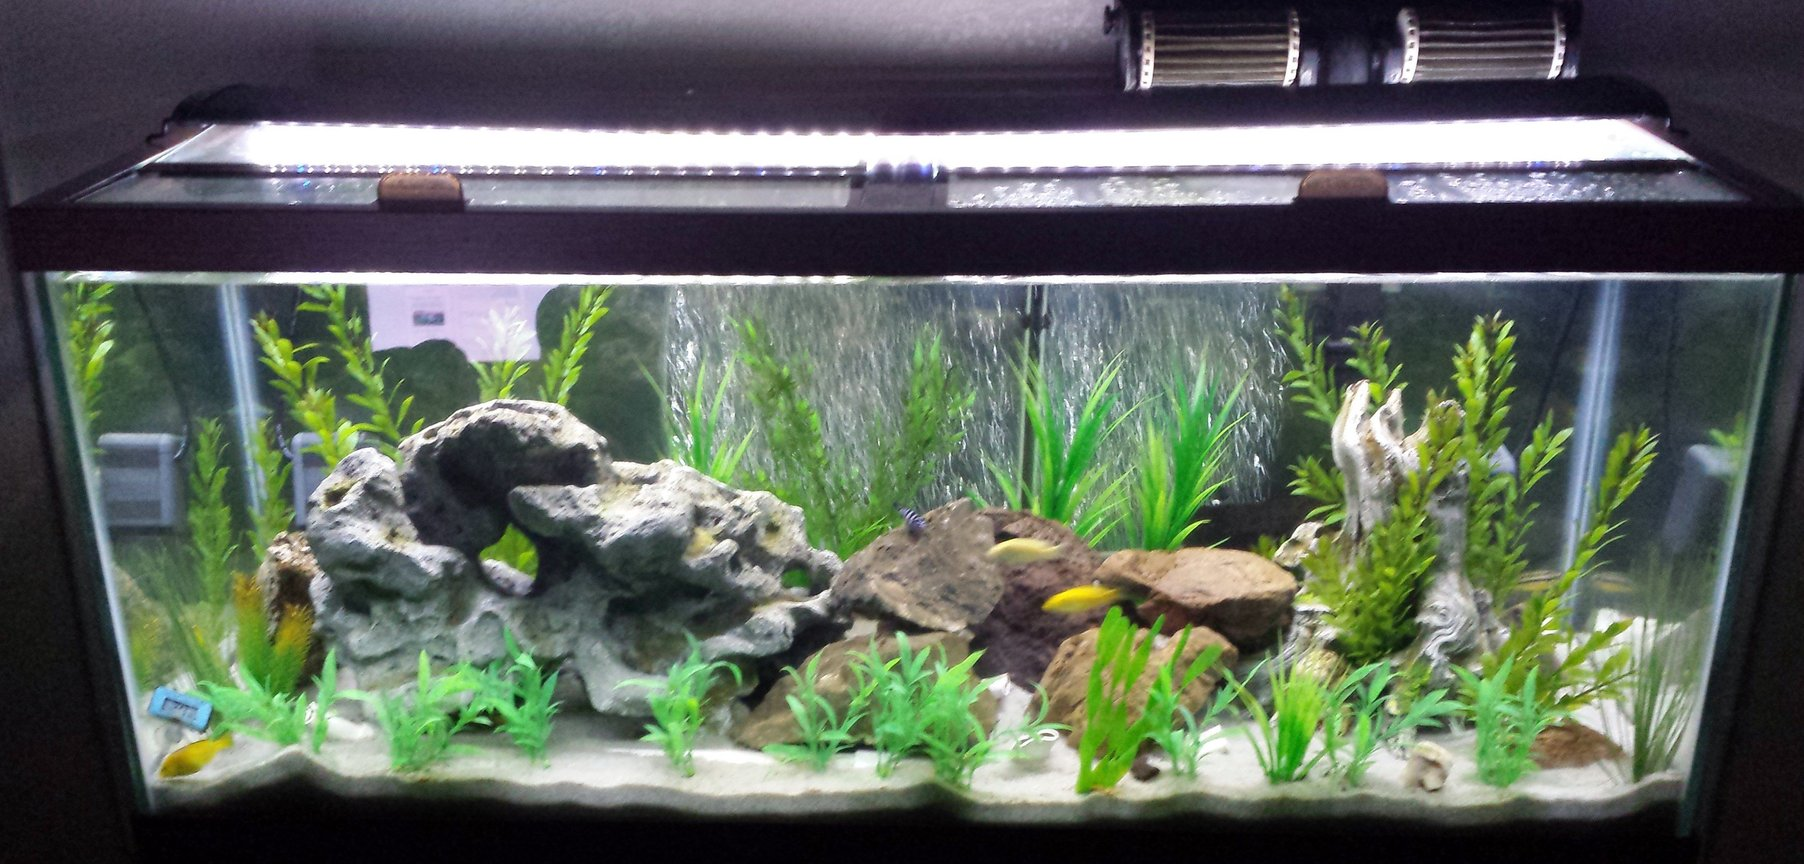 75 gallons freshwater fish tank (mostly fish and non-living decorations) - 75 Gal